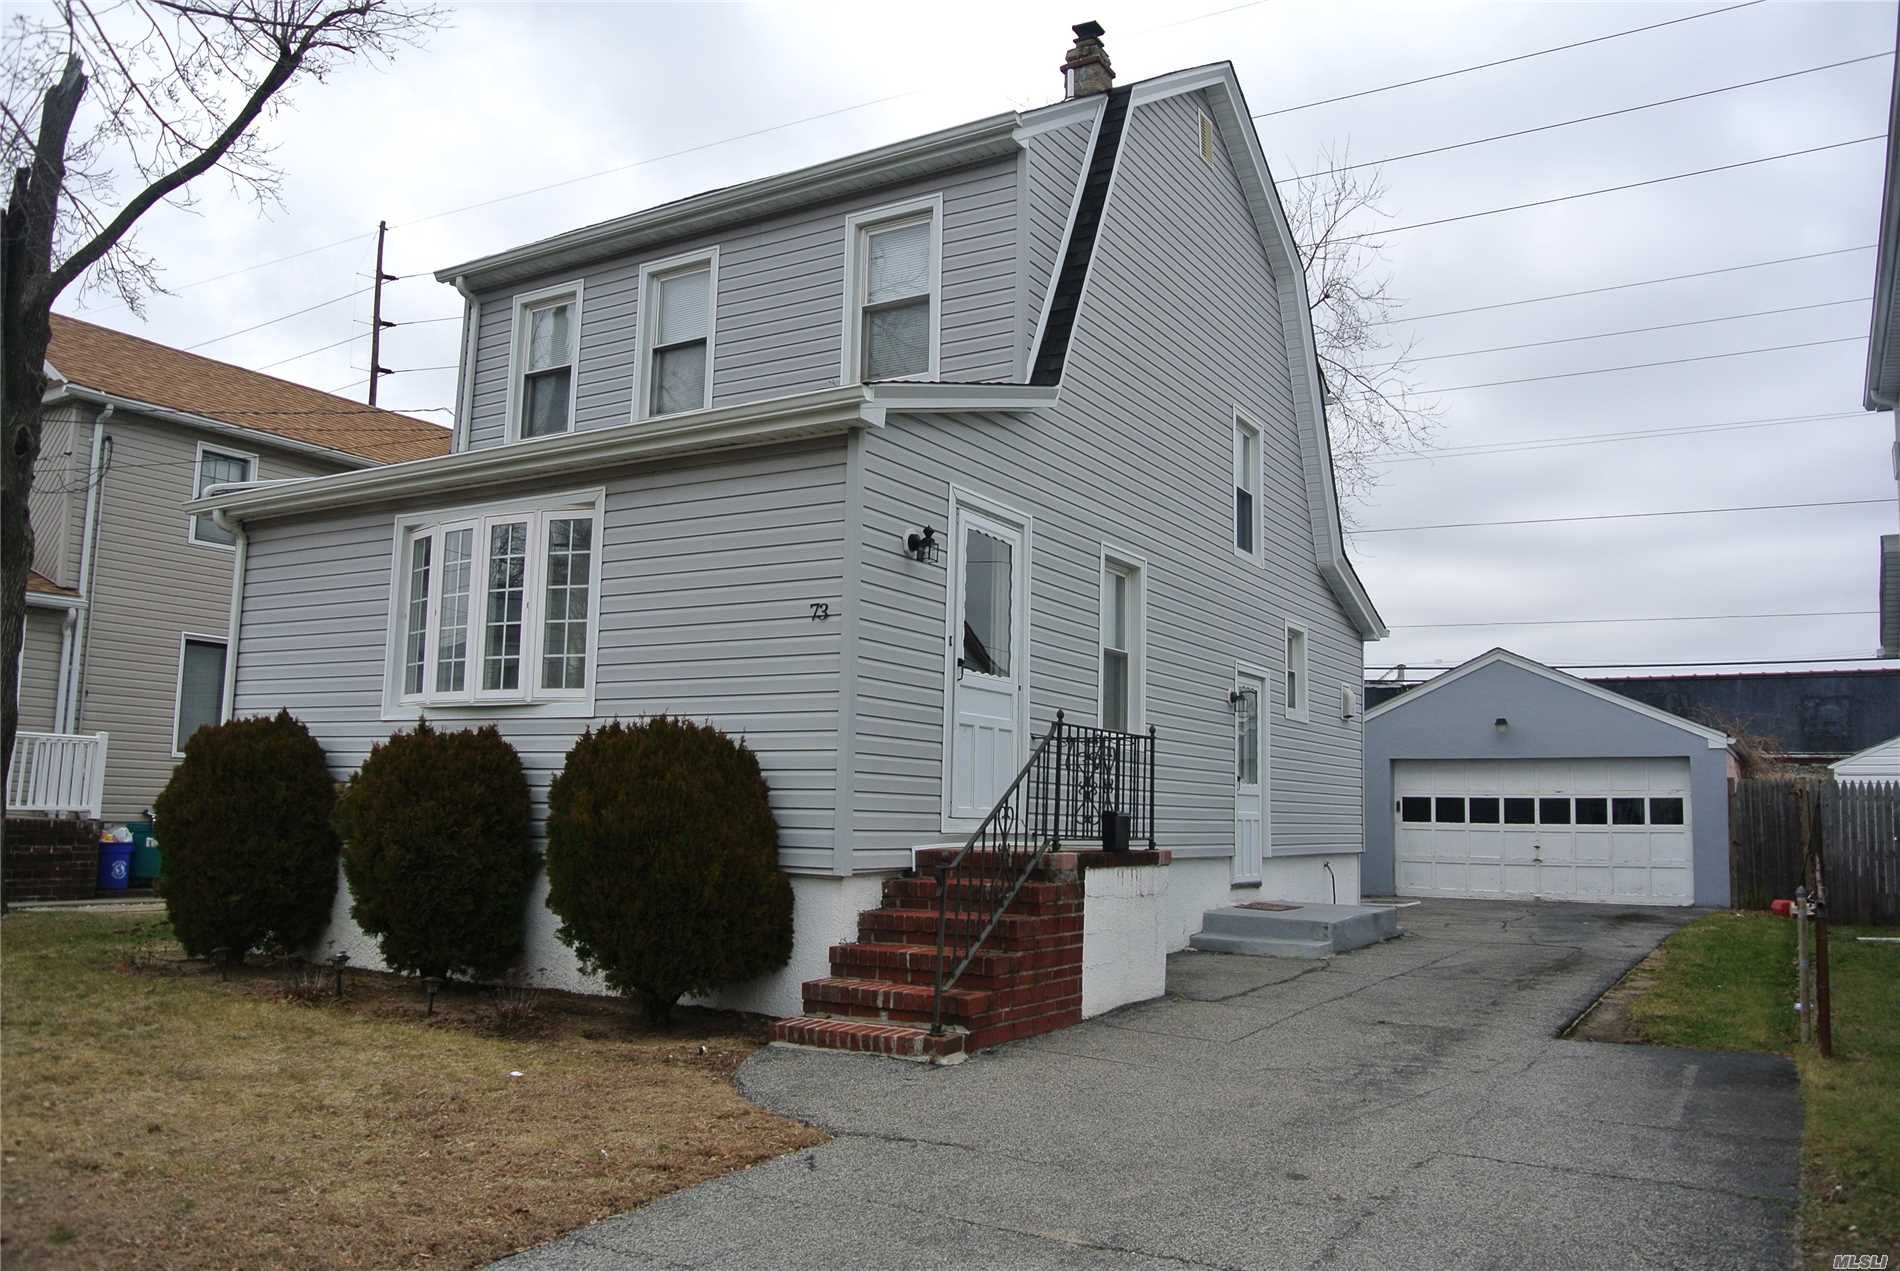 Mint Colonial, 3 Bed, 1.5 Bath, Full Basement, Close To Valley Stream Train-Station(5-10 Min Walk) Gibson Station(5-10 Min Walk) And Buses. Large 2-Car Cinder Block Garage, Many Updates Including: Roof & Siding(2013), Boiler(2012), Stove, Dishwasher, Washer, Dryer All (2016). Hardwood Floors Throughout.